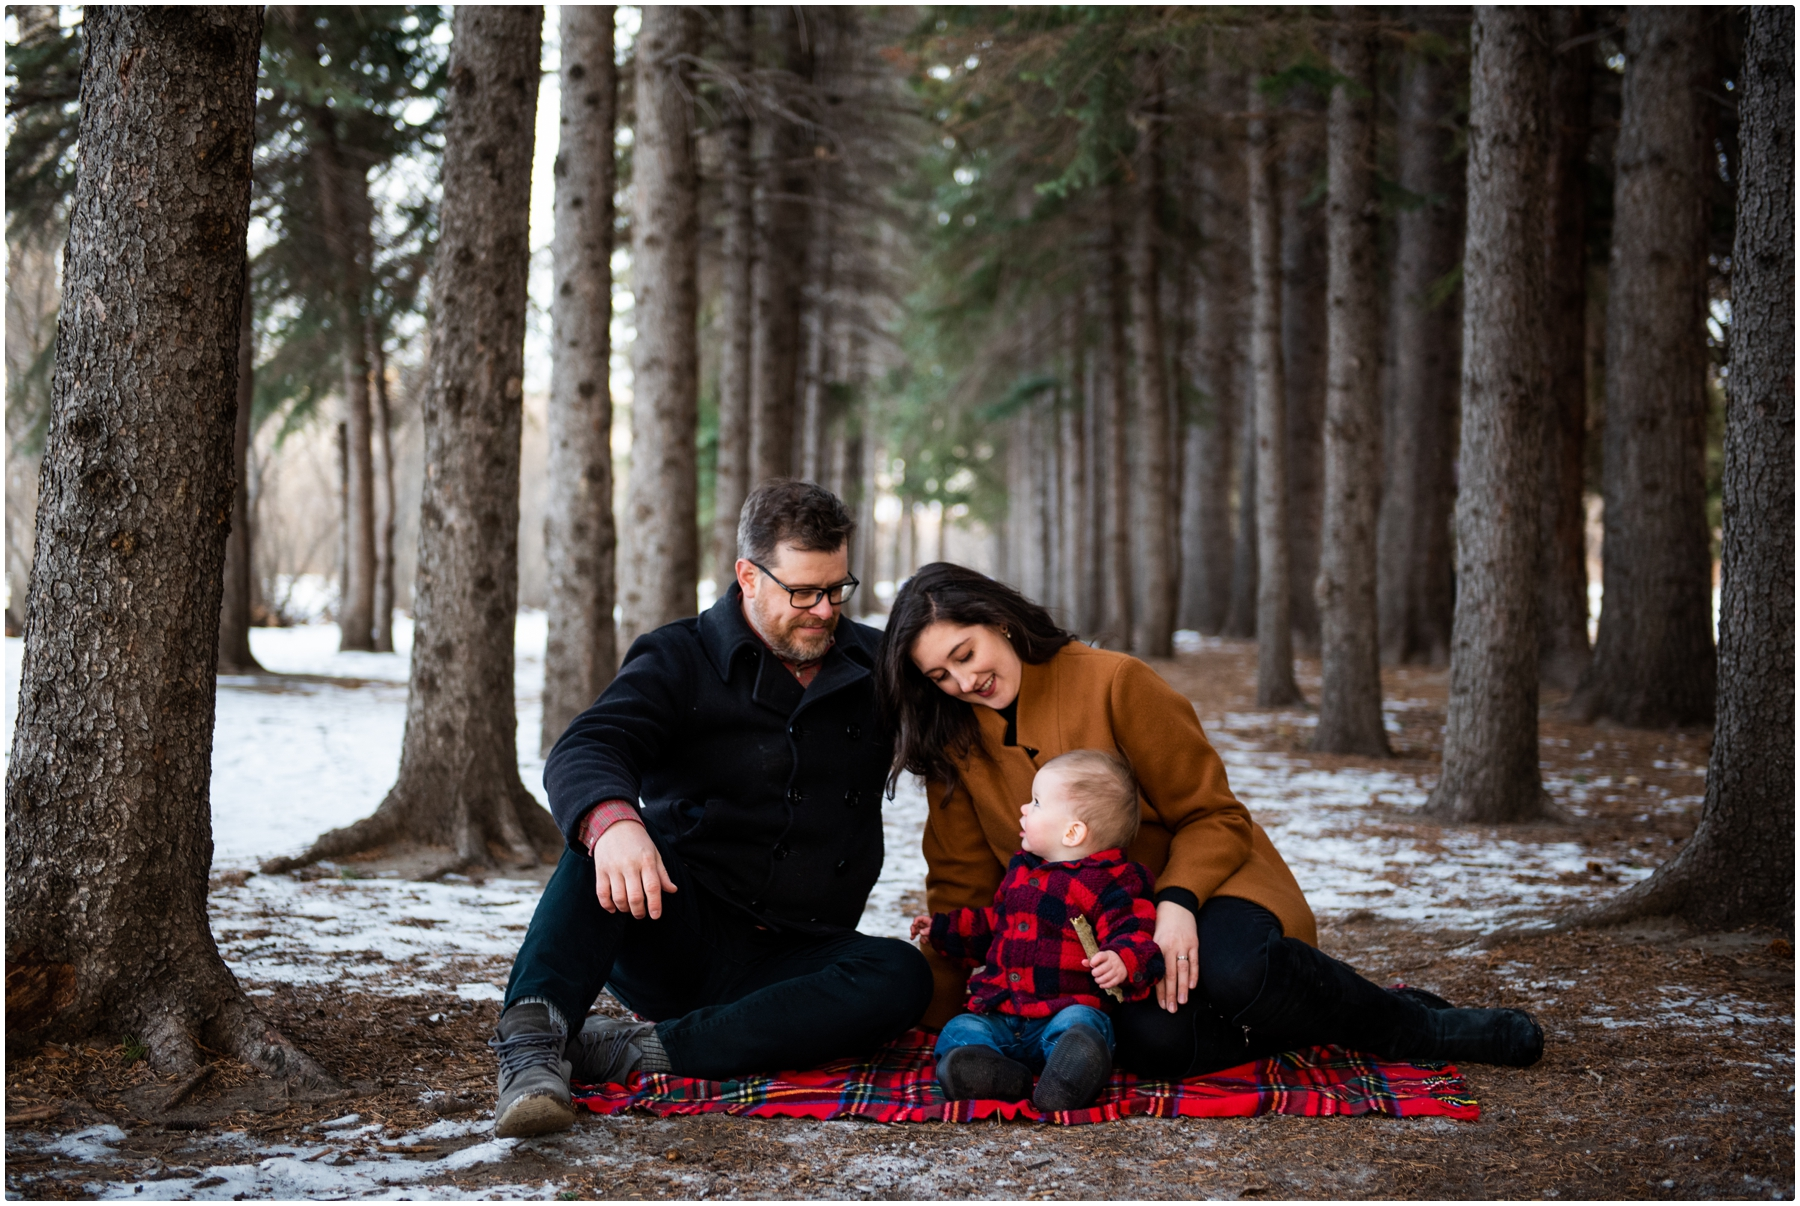 Edworthy Park Family Photography Calgary